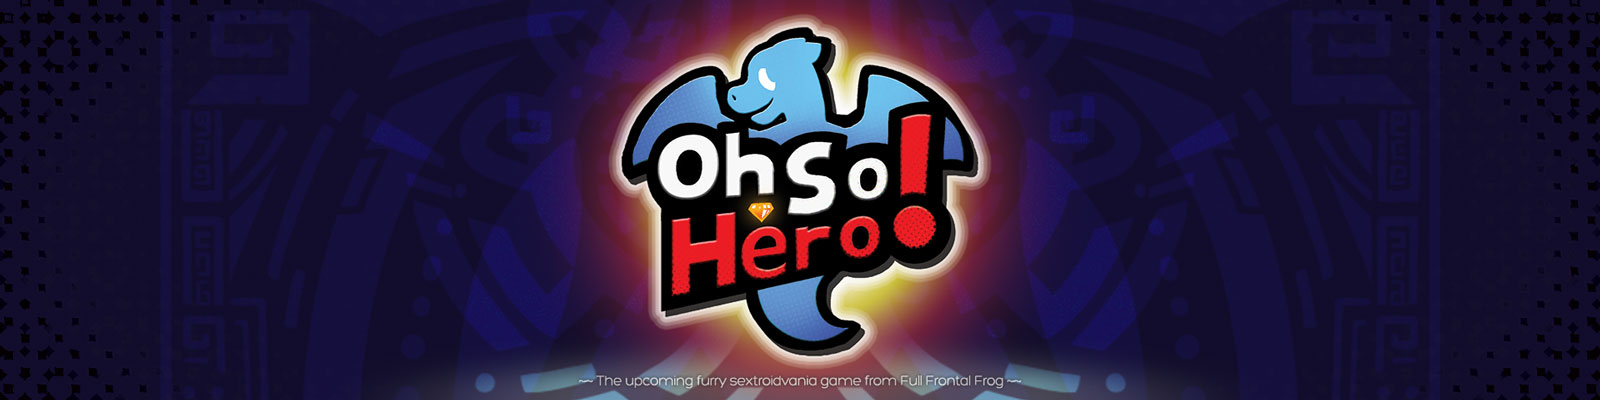 Oh So Hero! Pre Edition II